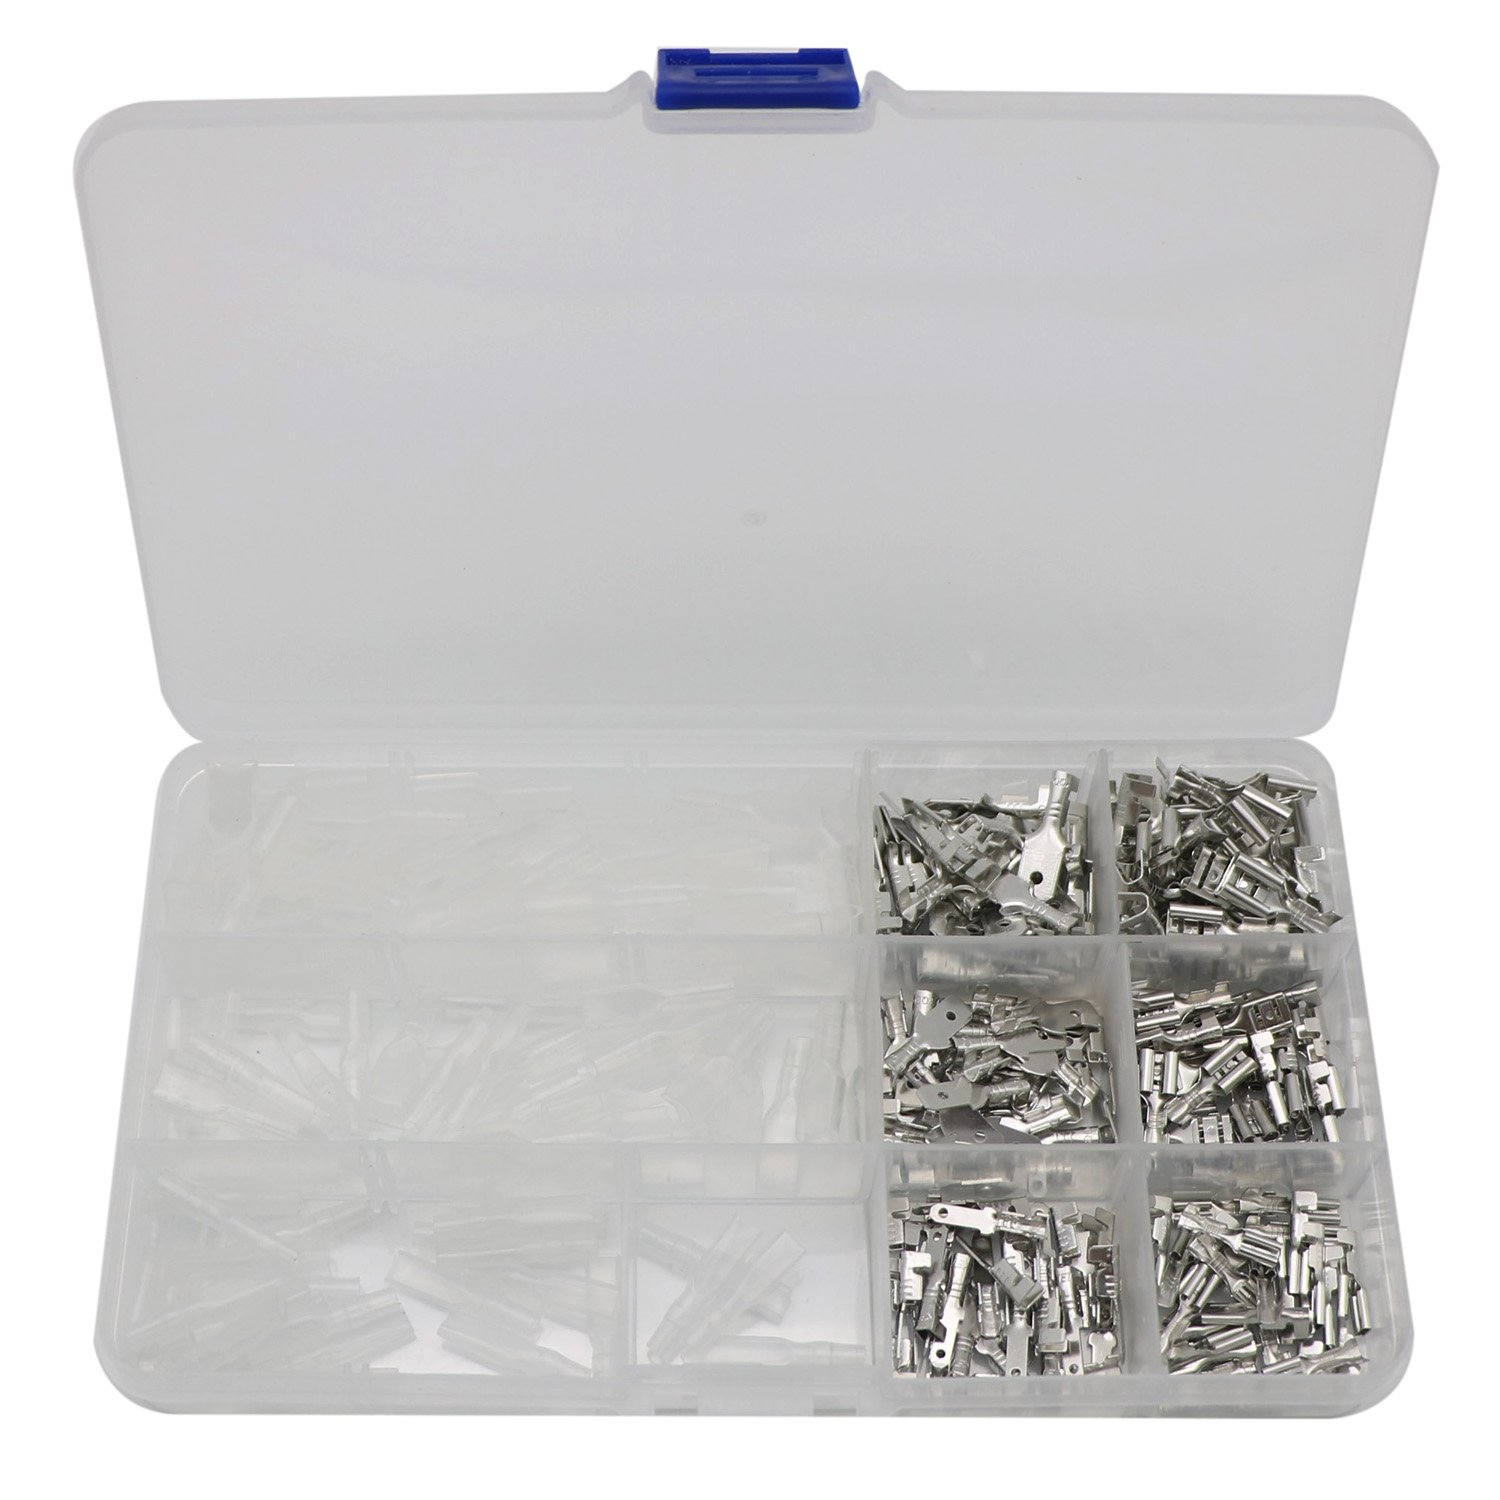 Spade Terminals 2.8mm 4.8mm 6.3mm Male Female Spade Connector Wire Crimp Terminal Block with Insulating Sleeve Assortment Kit 270Pcs